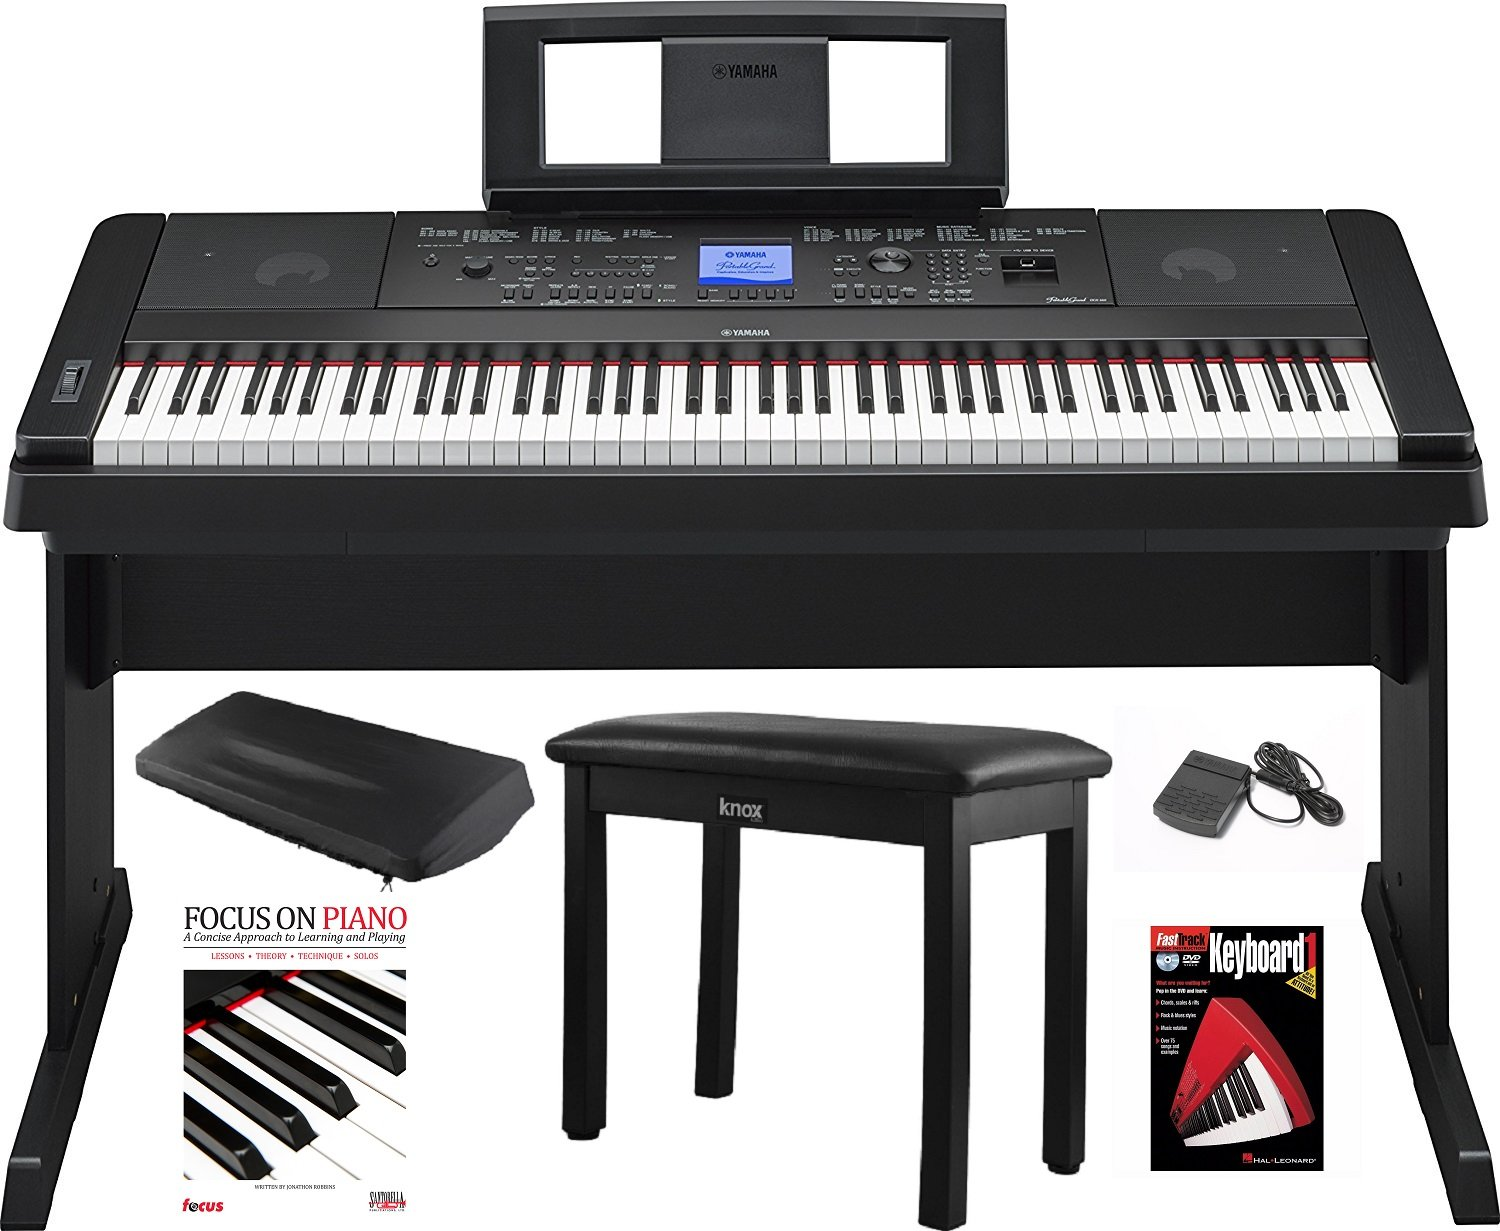 Yamaha DGX-660 88 Key Grand Digital Piano with Knox Piano Bench,Pedal,Dust Cover and Book/DVD by YAMAHA